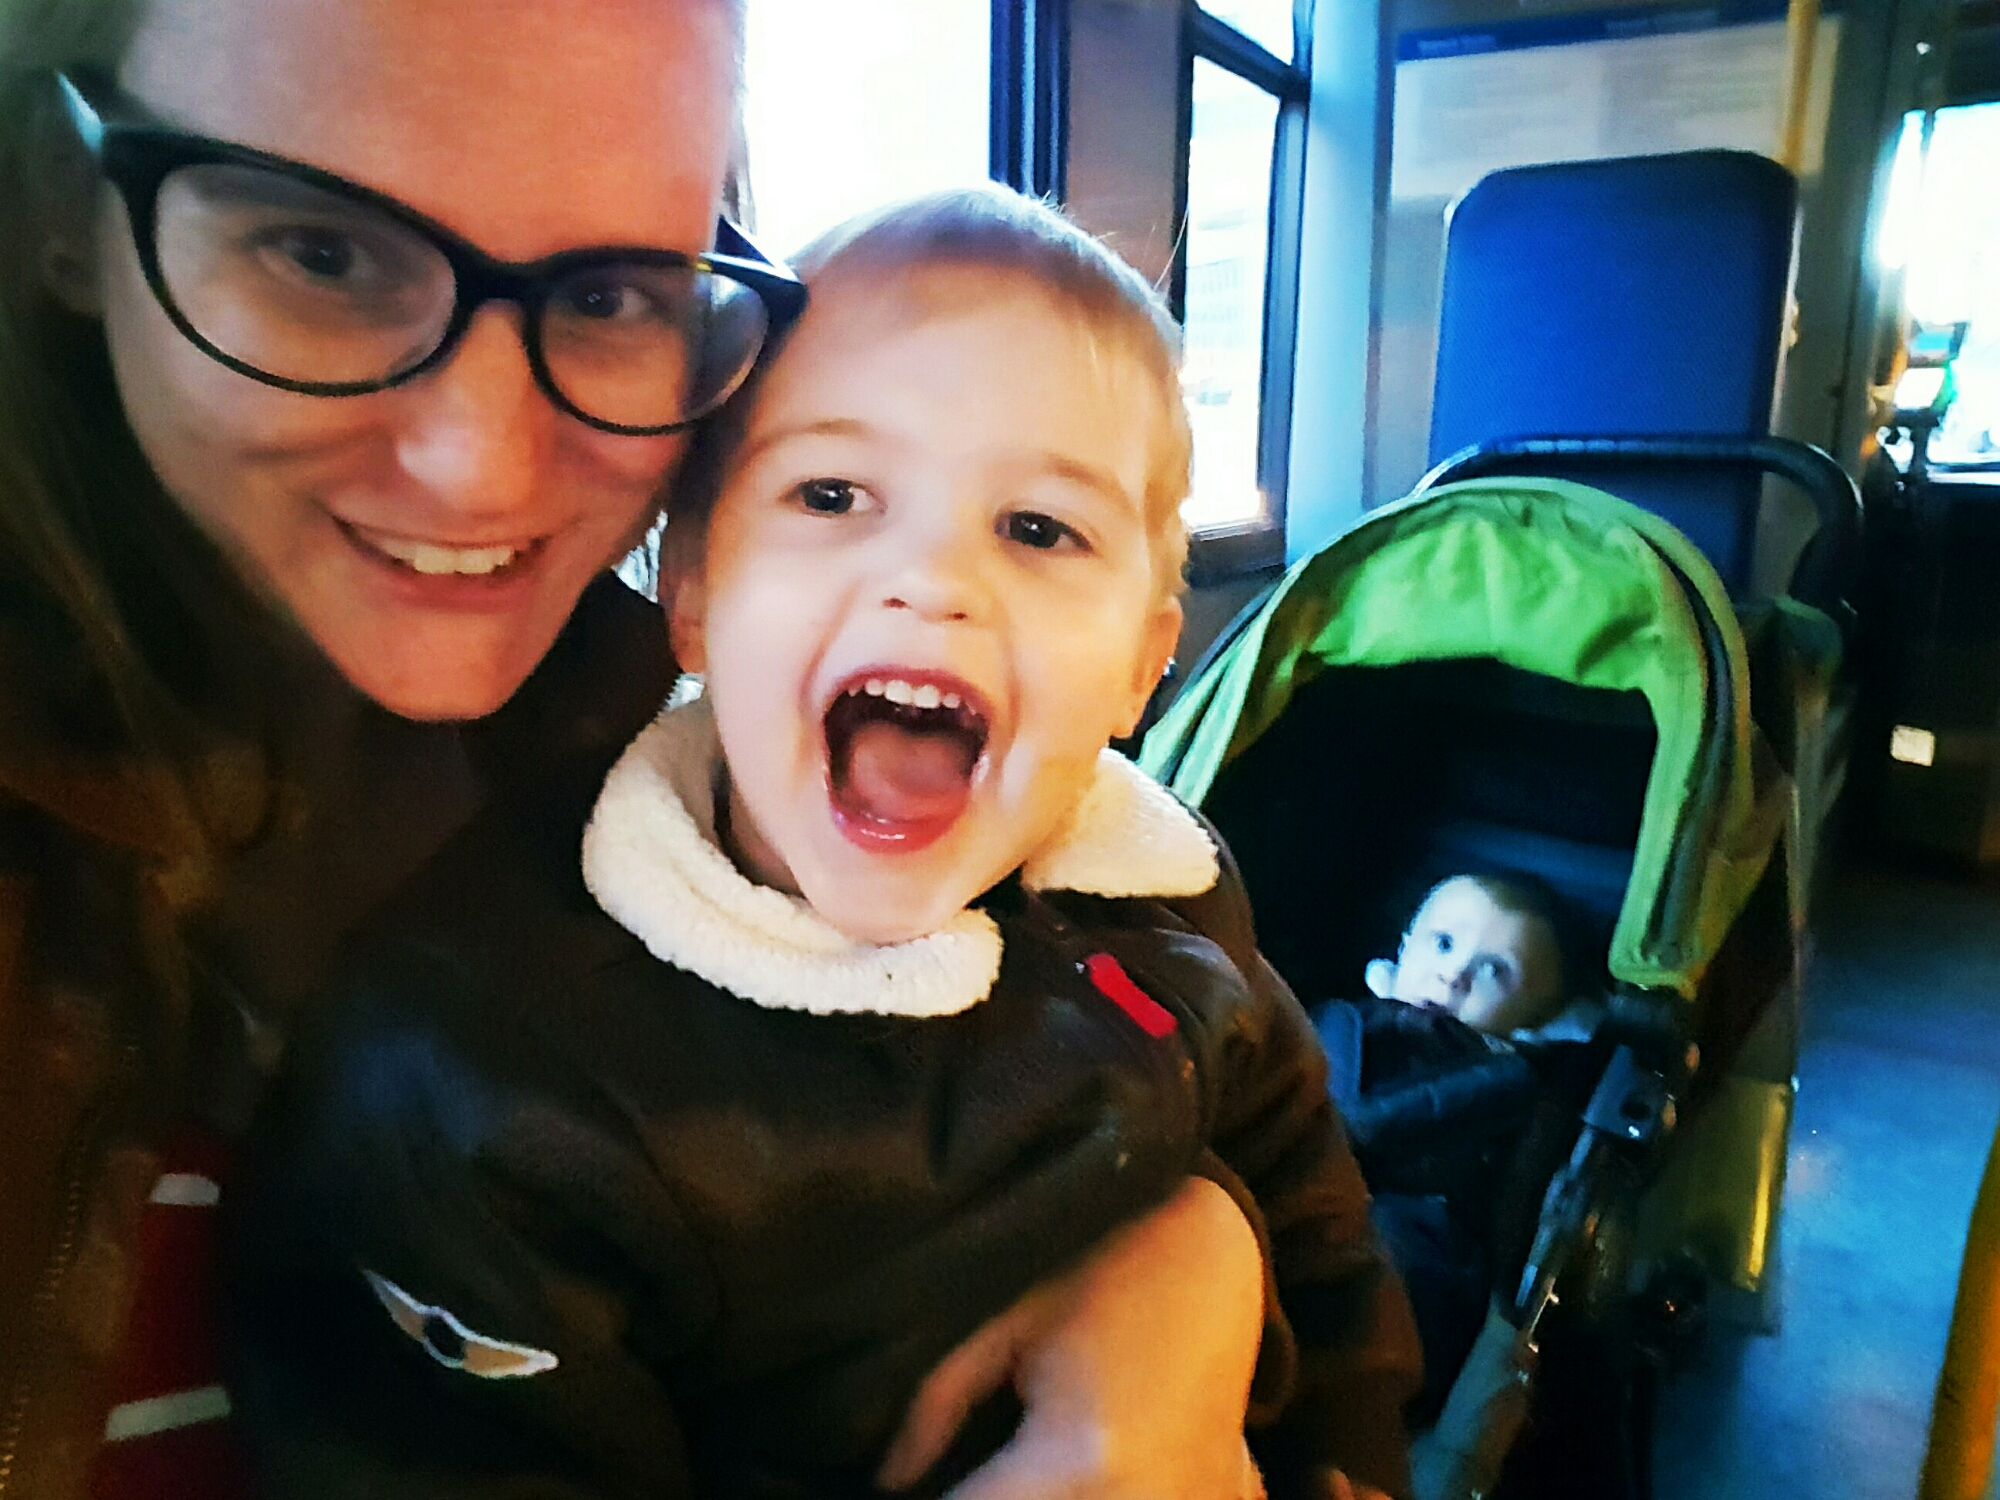 Sometimes building mastery is as simple as surviving a bus ride with 2 kids. Check out more DBT Skills got Parents on HappyGoMama.com.